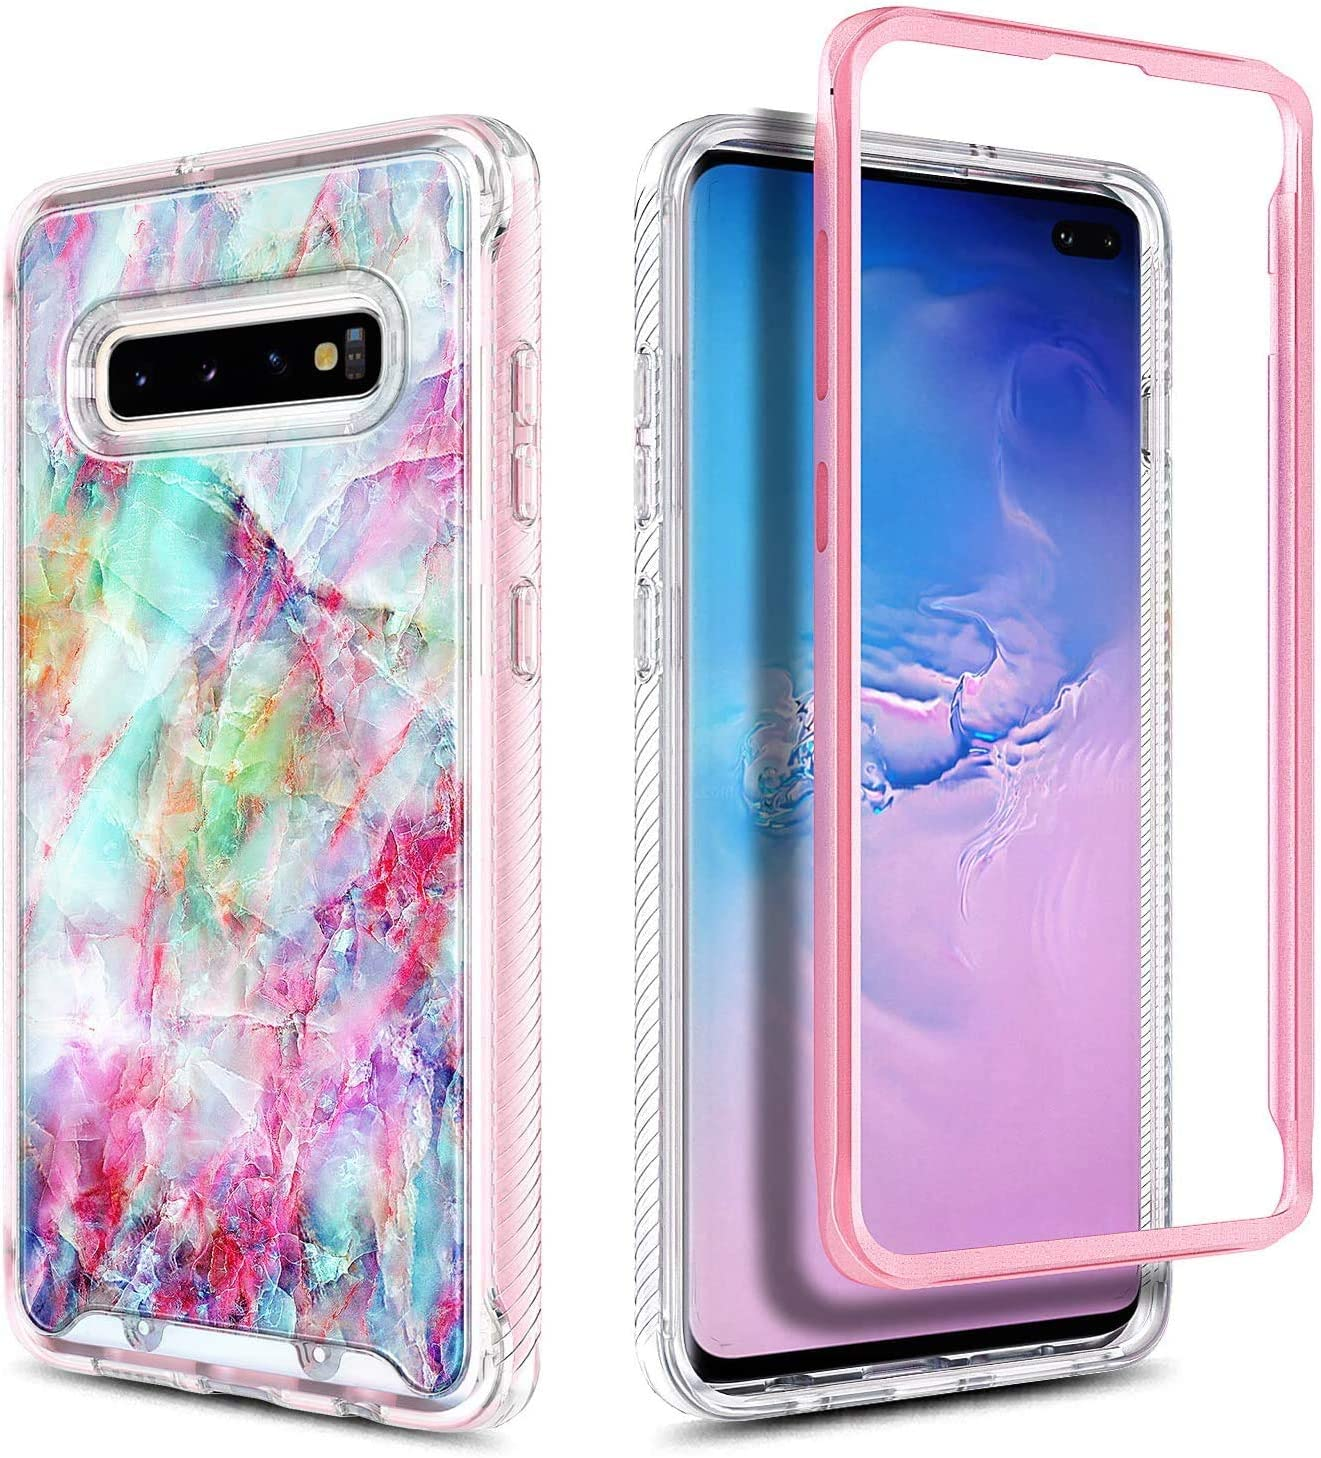 E-Began Case for Samsung Galaxy S10 Support Wireless Charging -Clear Full-Body Protection Rugged Matte Bumper Shockproof Protective Impact Resist Durable Phone Case 6.1 inch 2019 Release